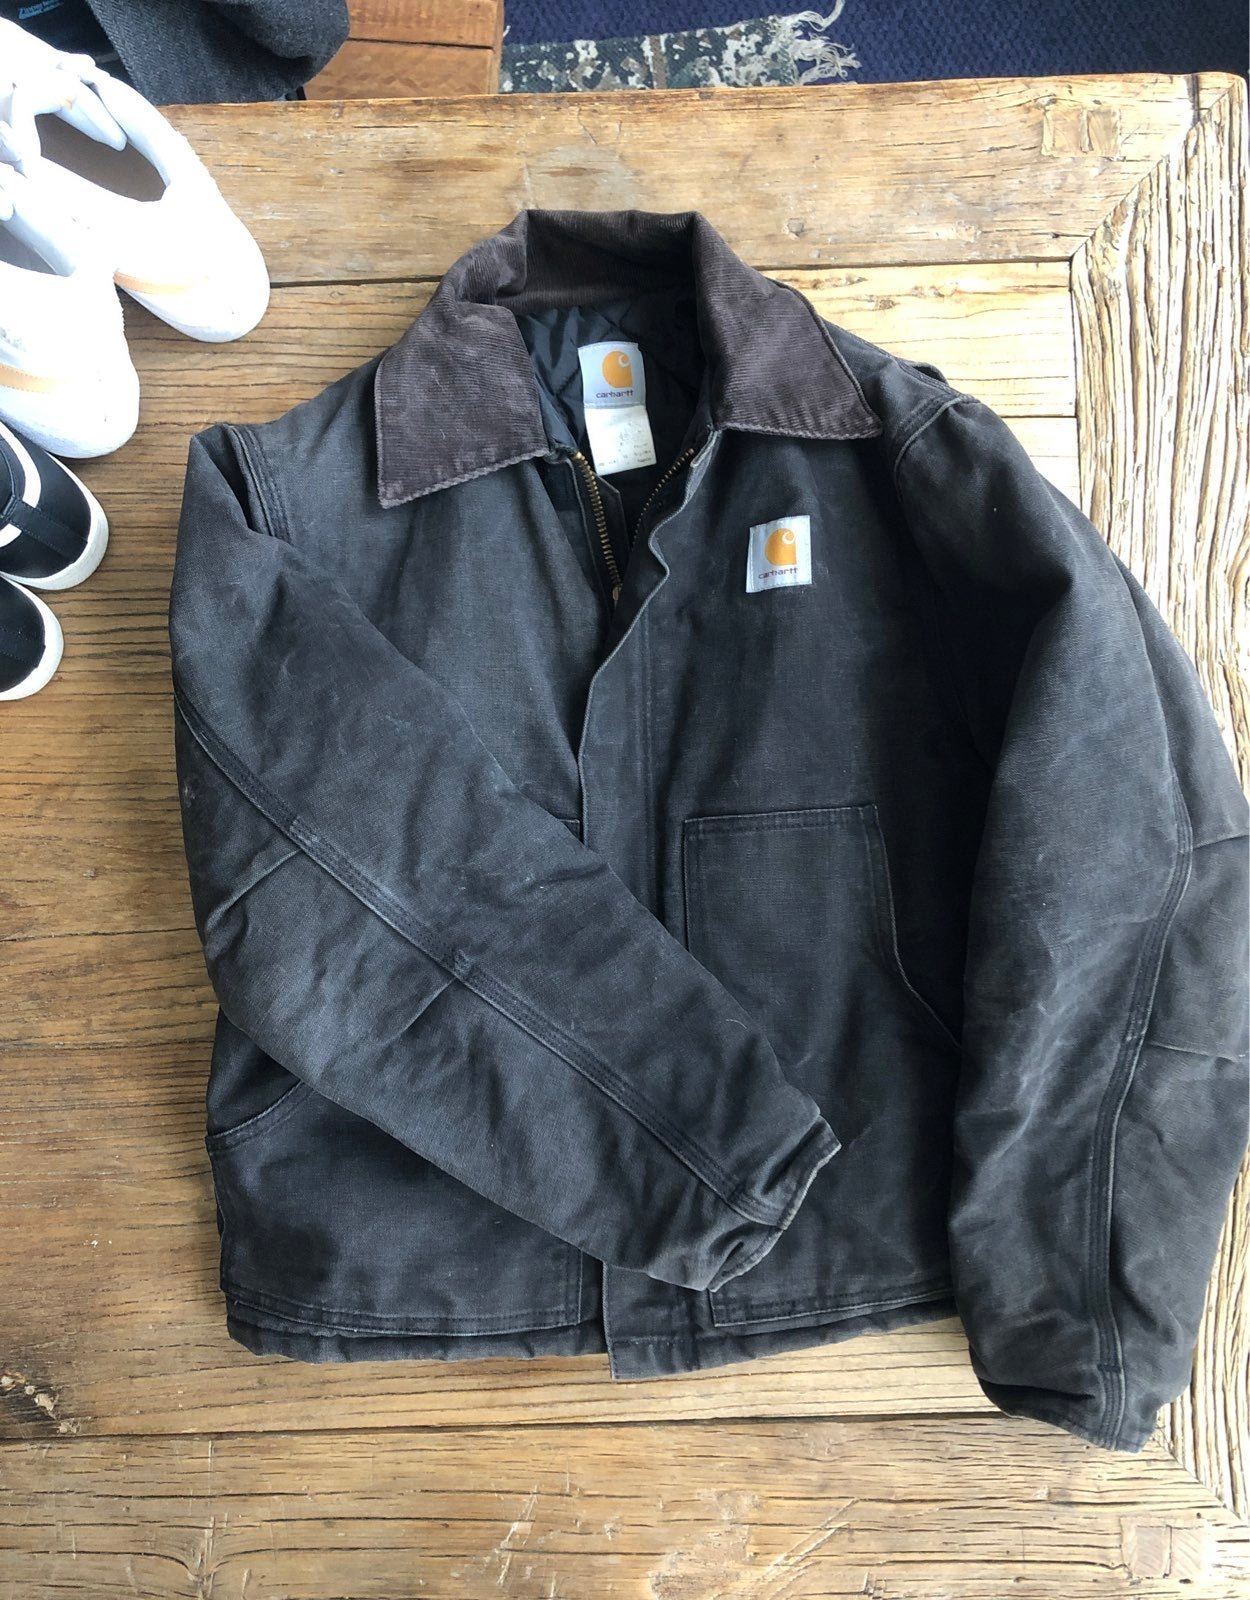 Carhartt jacket size 42 fits S to Med